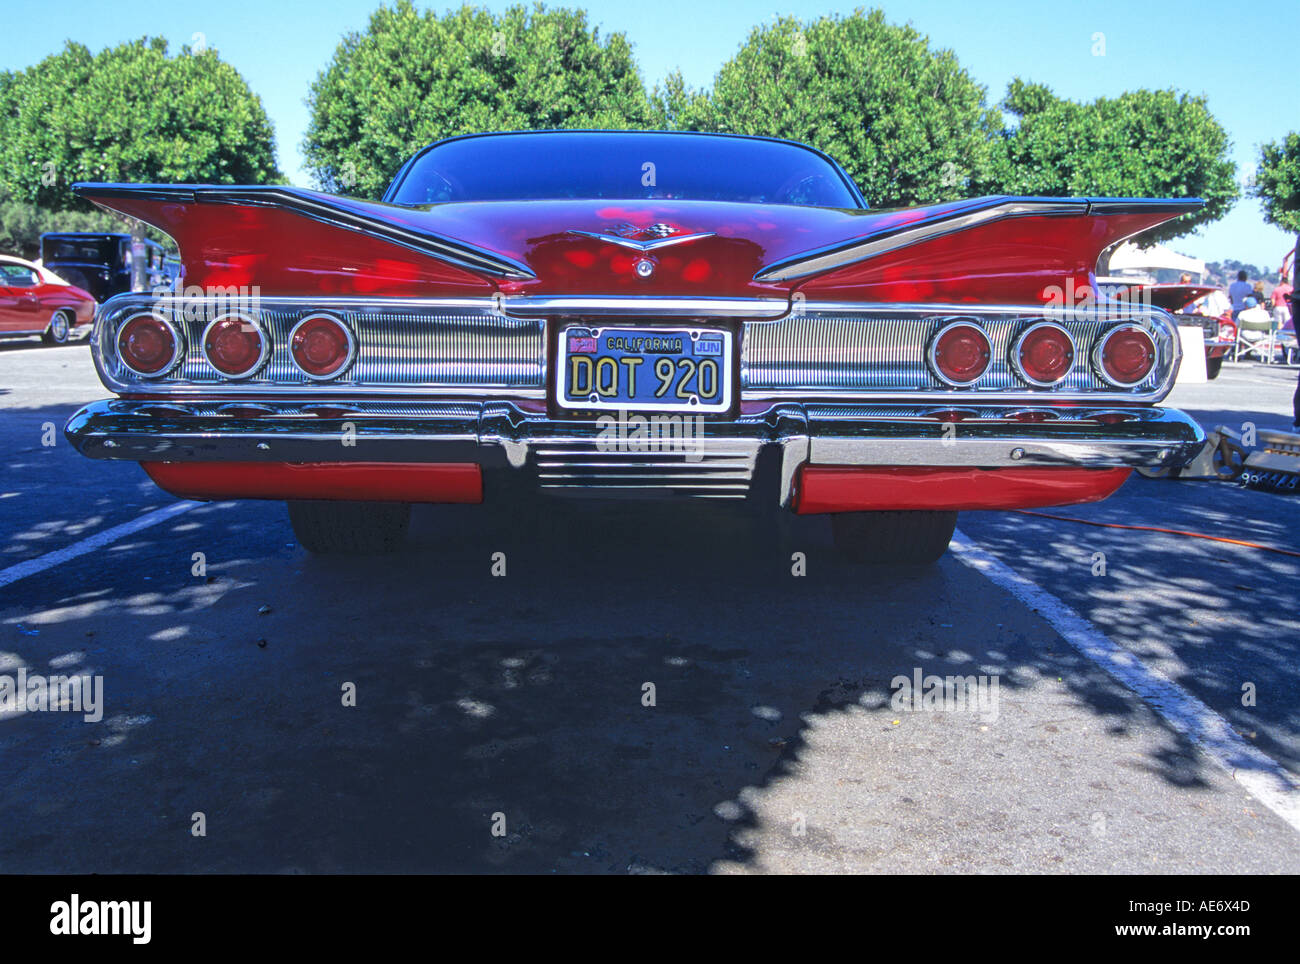 '^1960 Chevrolet Impala 2 door Coupe, tail fins, California' - Stock Image